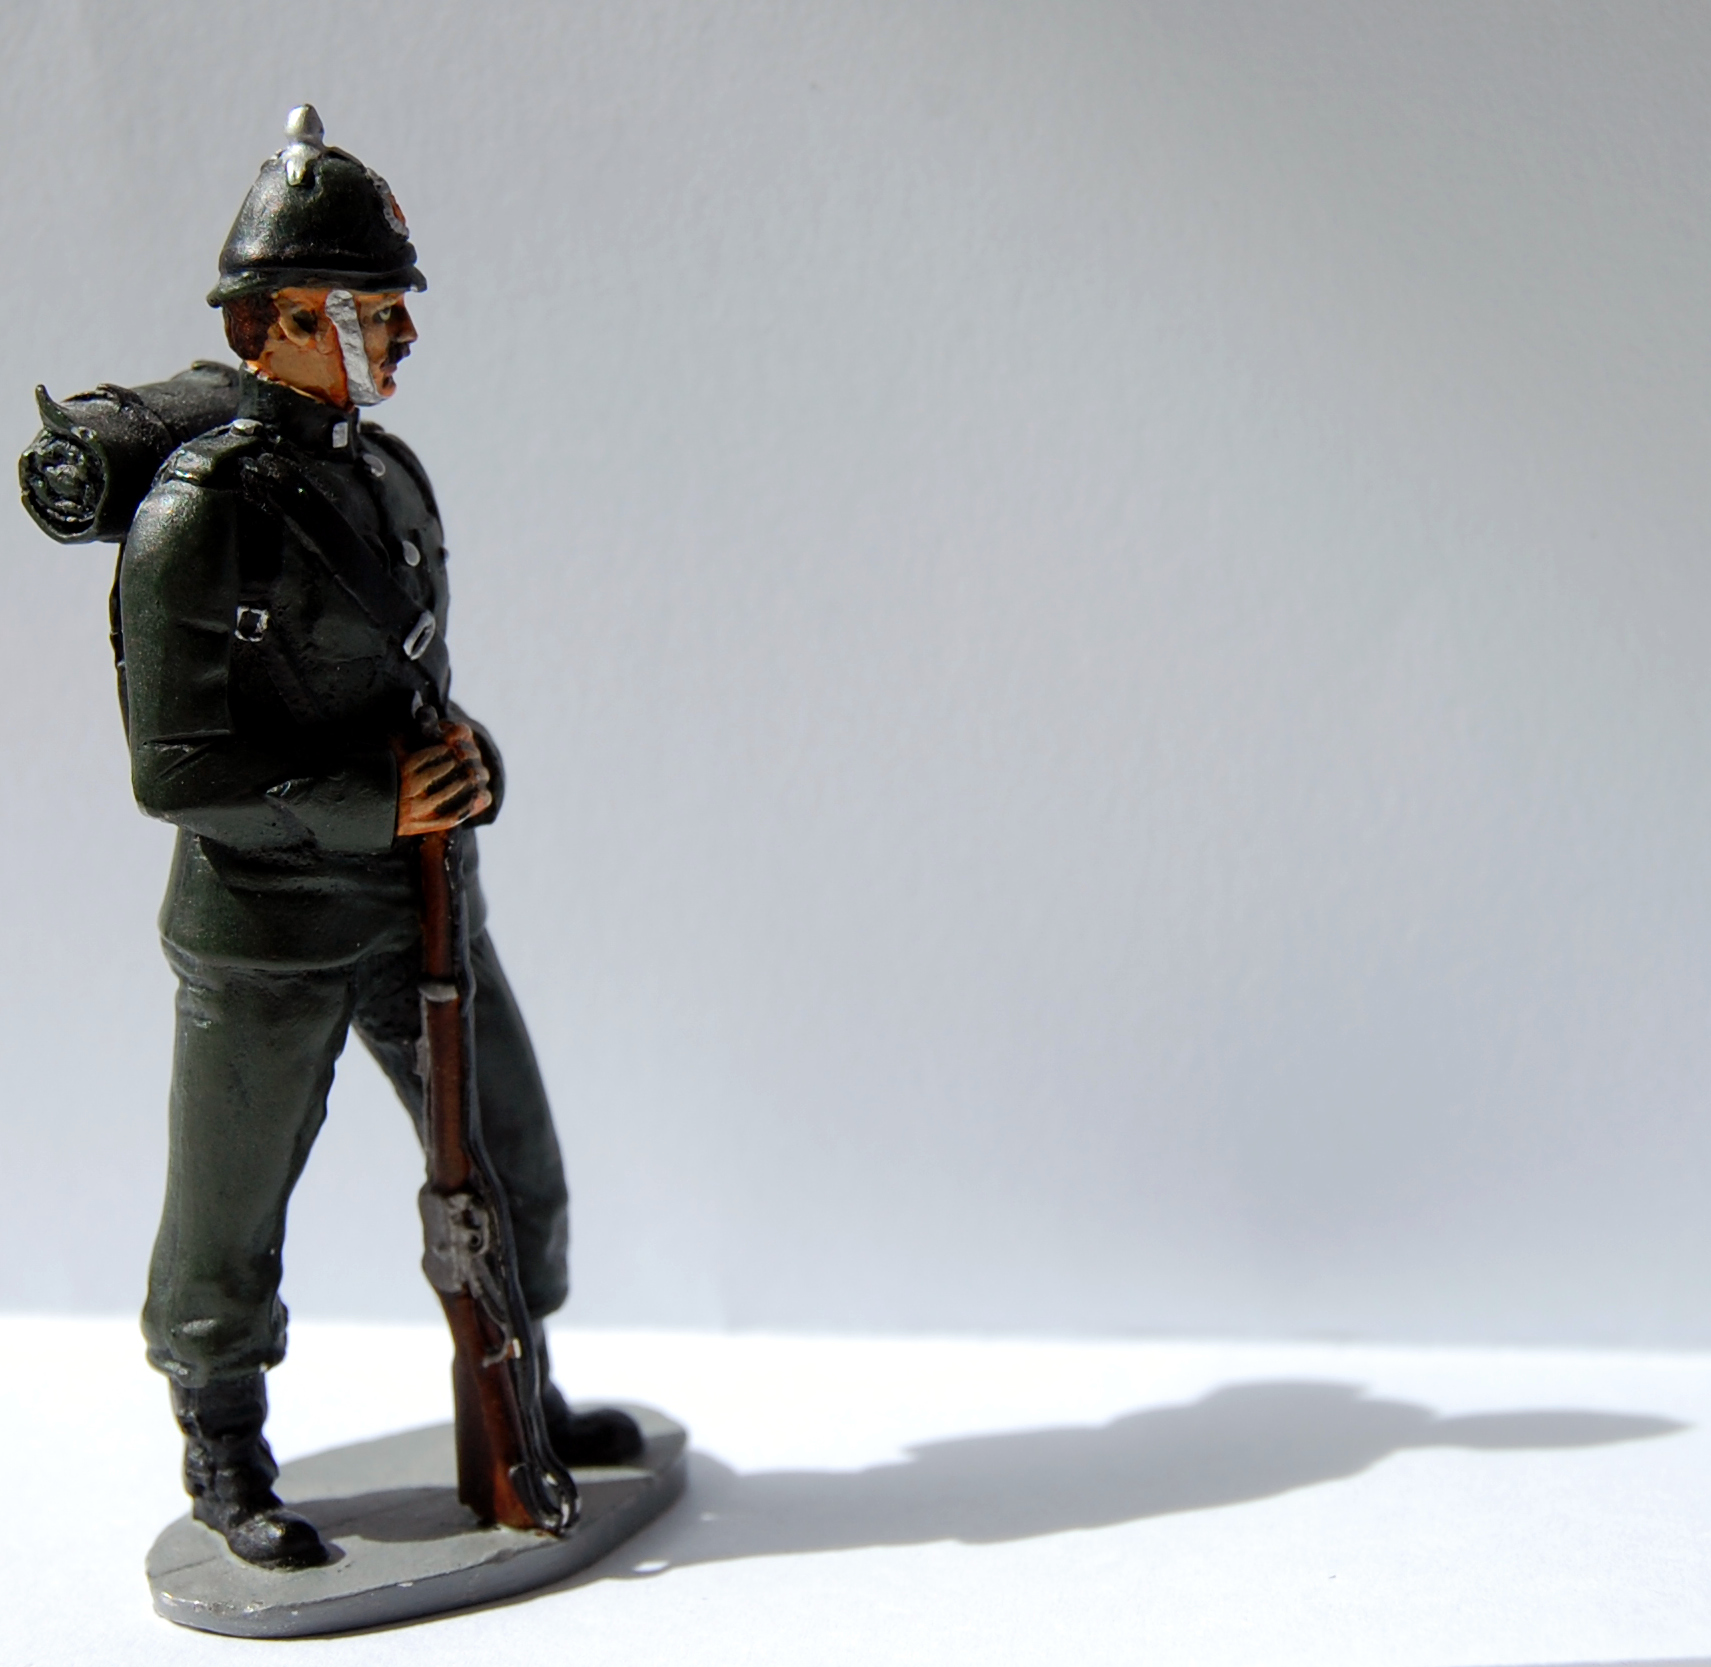 Toy RIC policeman